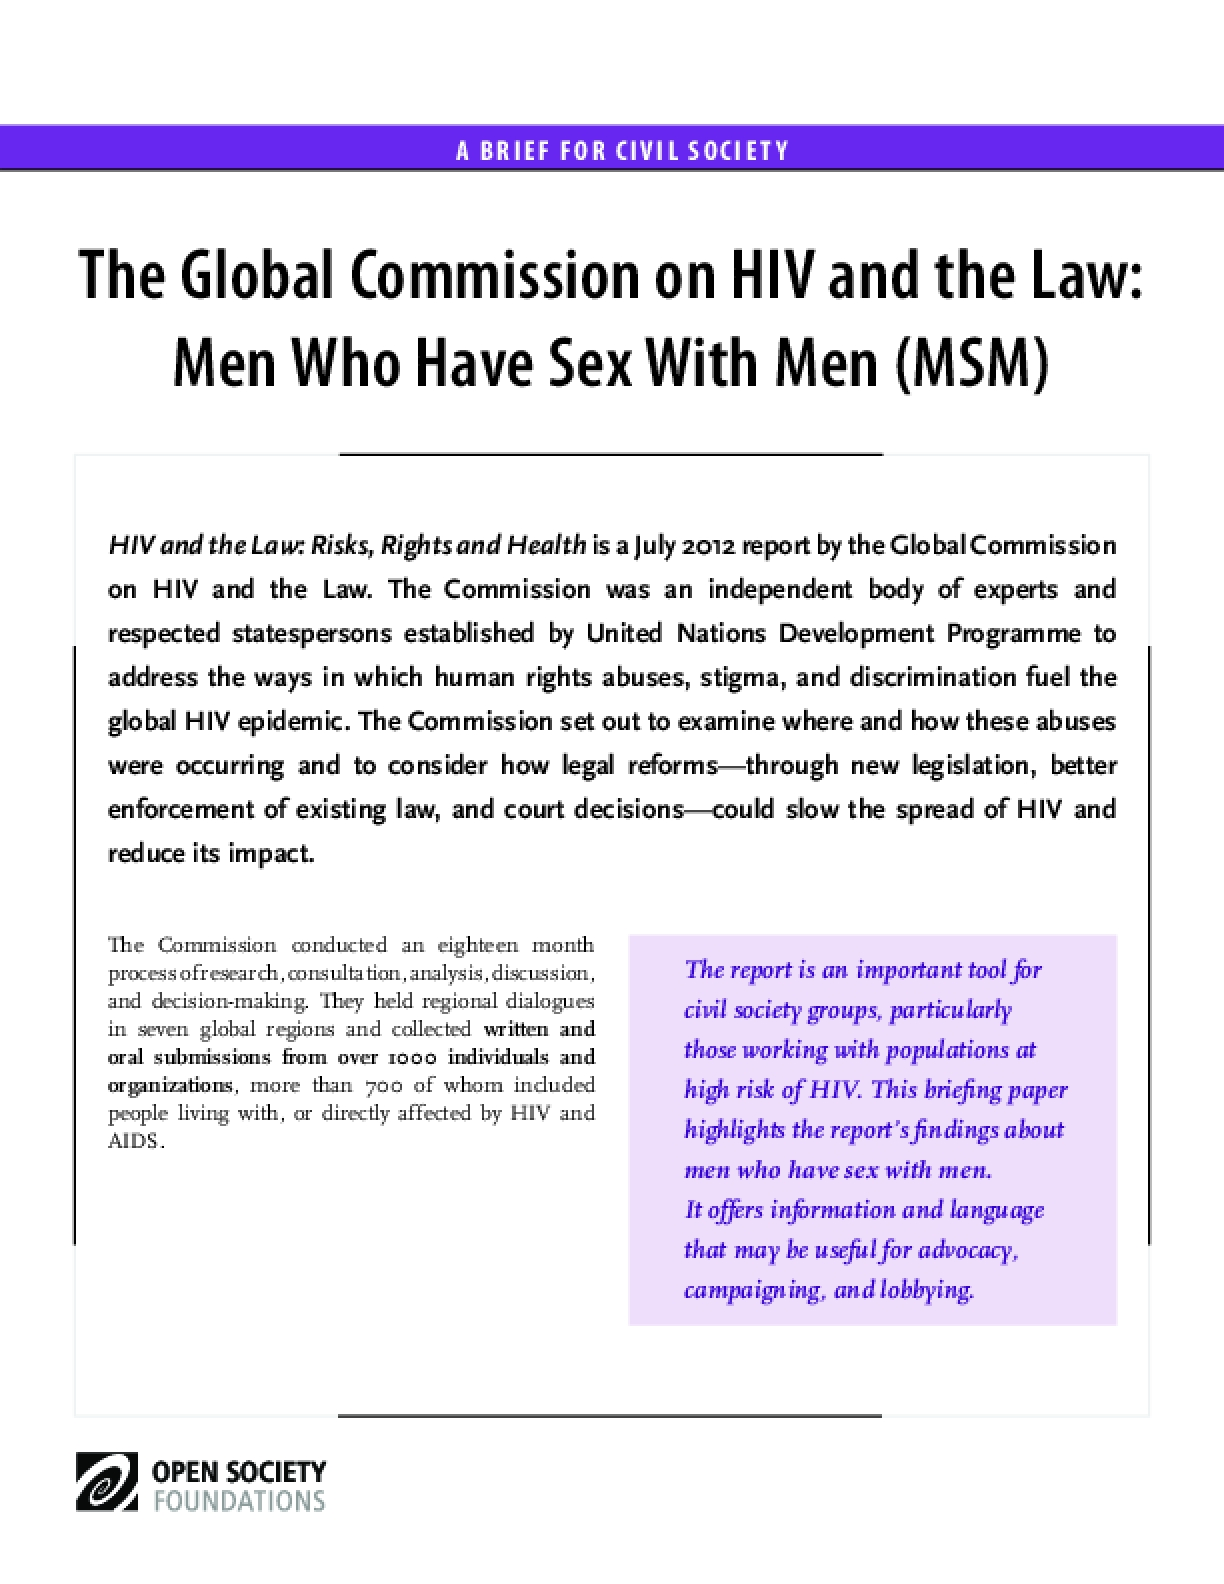 HIV and the Law: Men Who Have Sex with Men